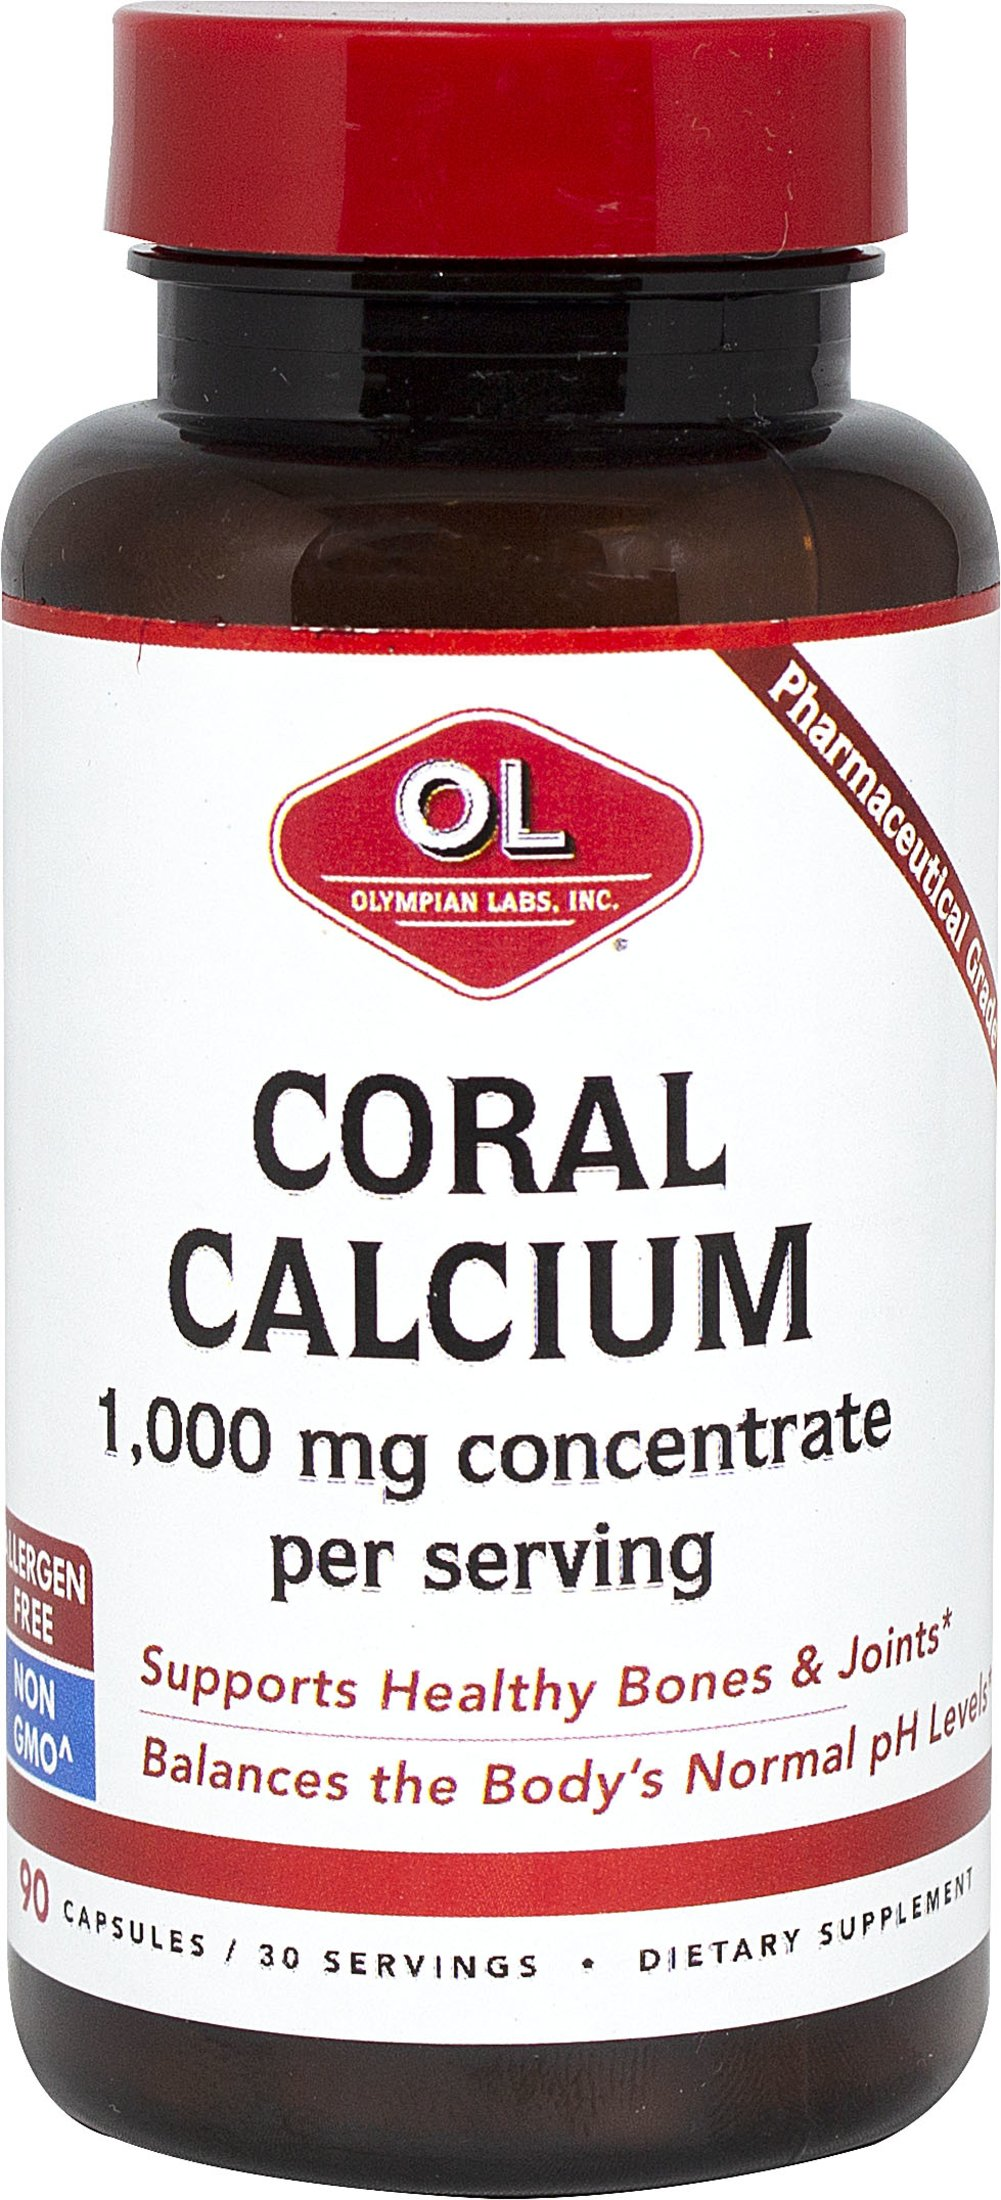 Coral Calcium Thumbnail Alternate Bottle View